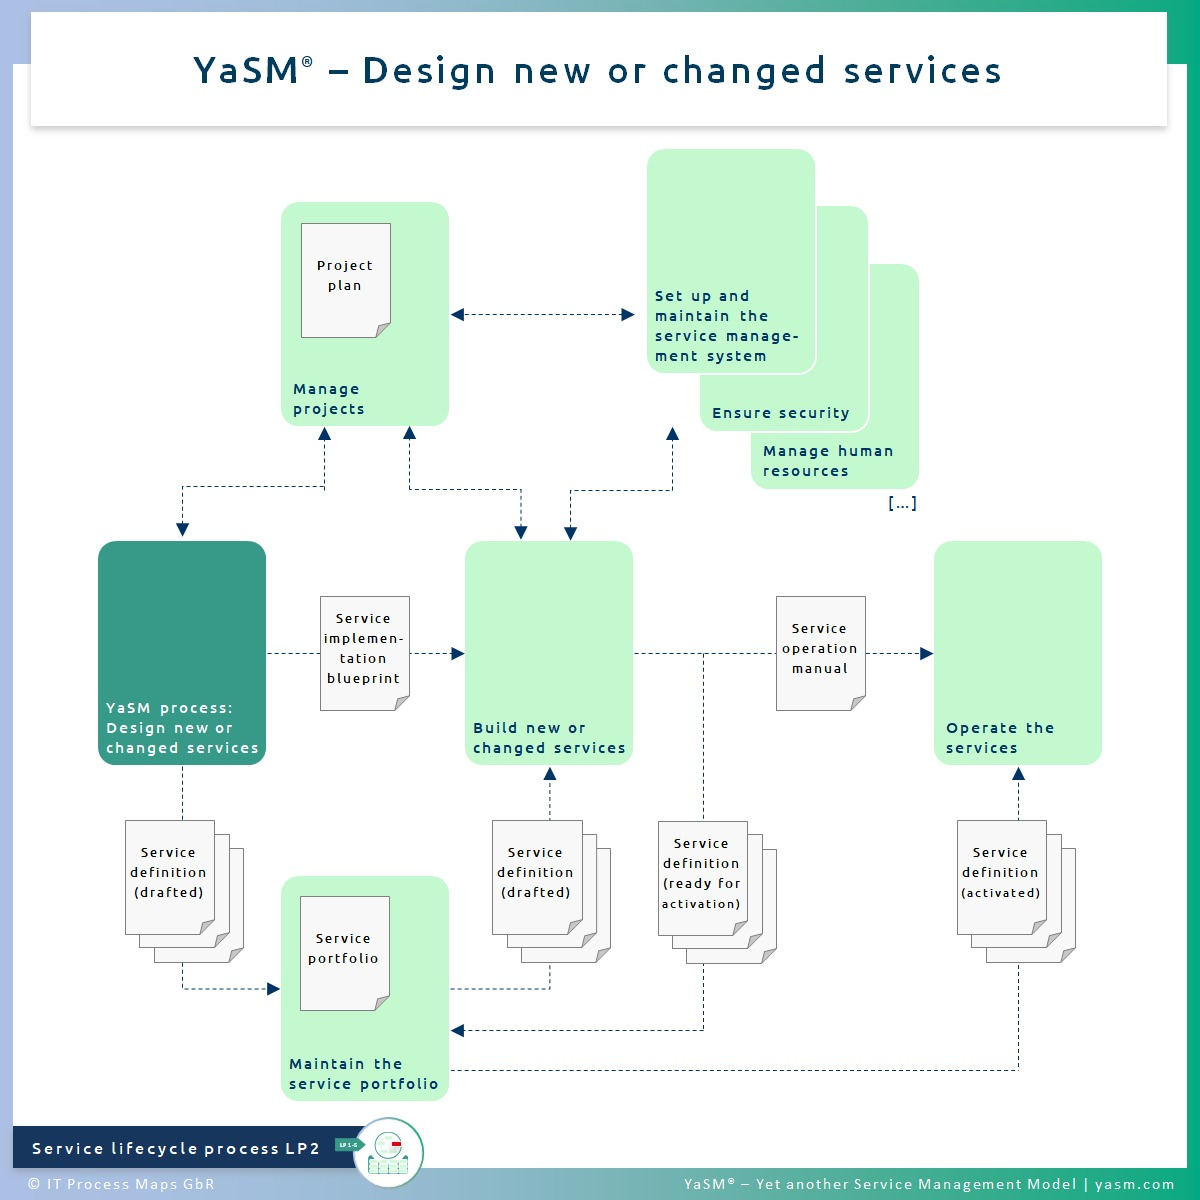 Fig. 1: Design new or changed services. - YaSM service design process LP2. - Related with: Practice of ITIL 4 strategy management.